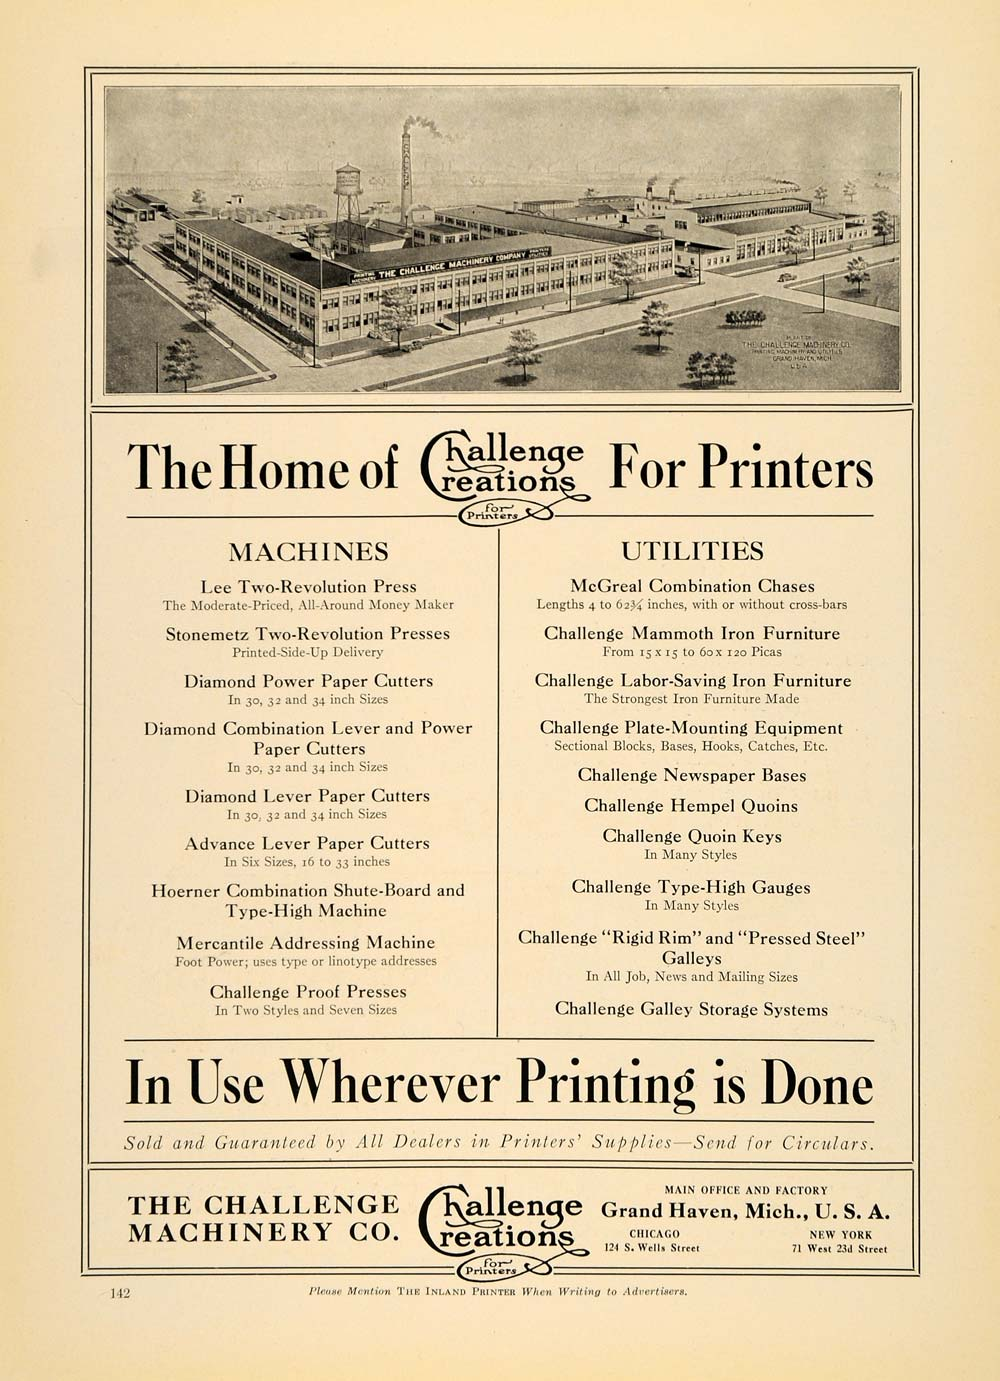 1920 Ad Challenge Machinery Co. Creations Printer Plant - ORIGINAL IPR1